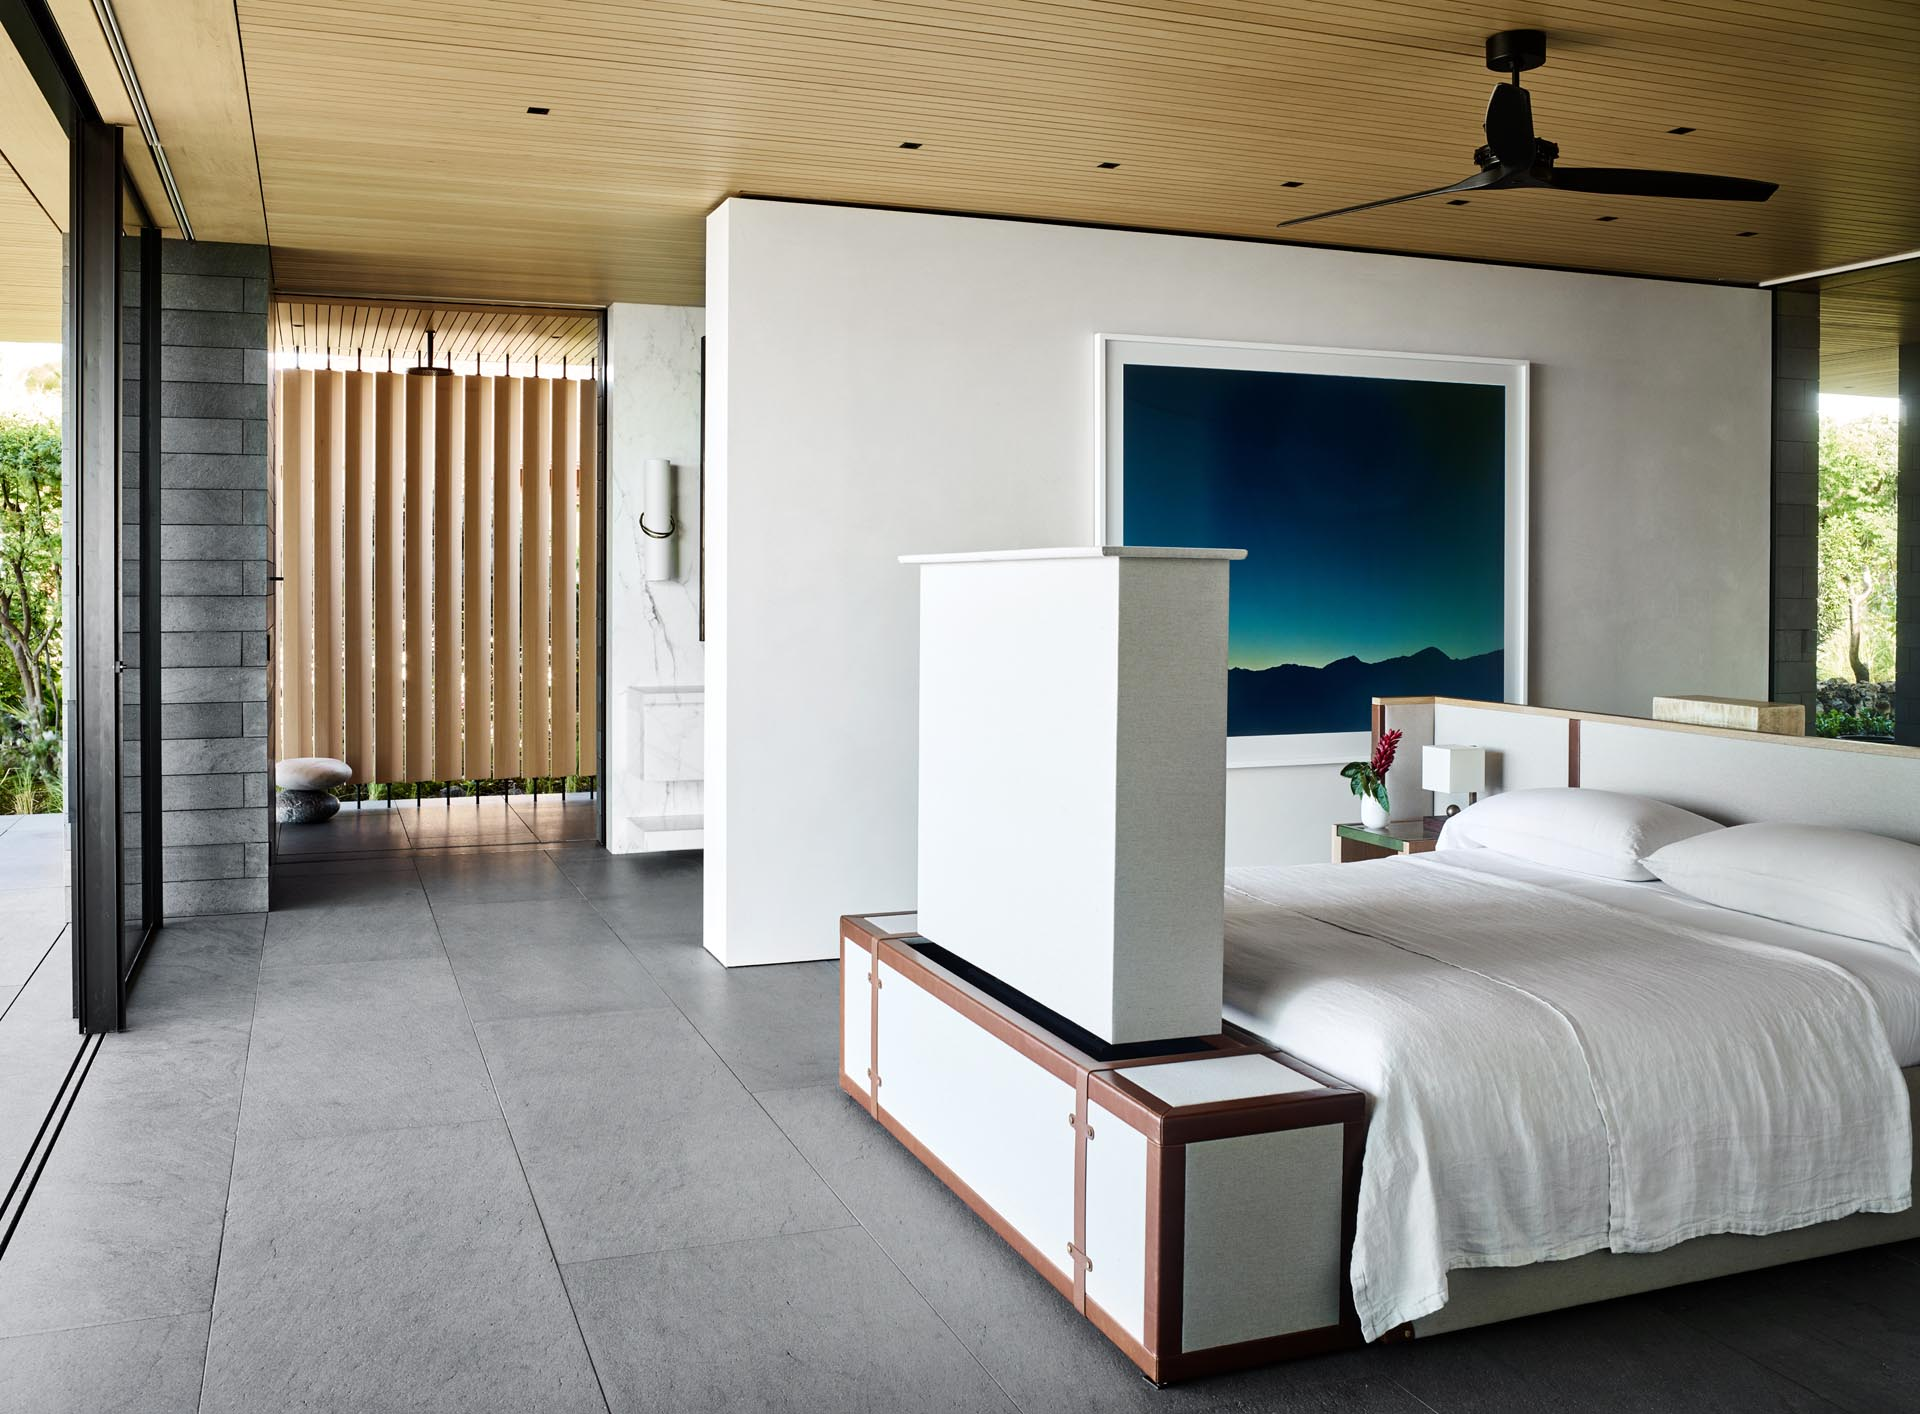 In the master bedroom, the bed frame has been centrally positioned in the room to take advantage of the views. There's also a hidden television at the end of the bed, and behind the headboard, there's a desk.